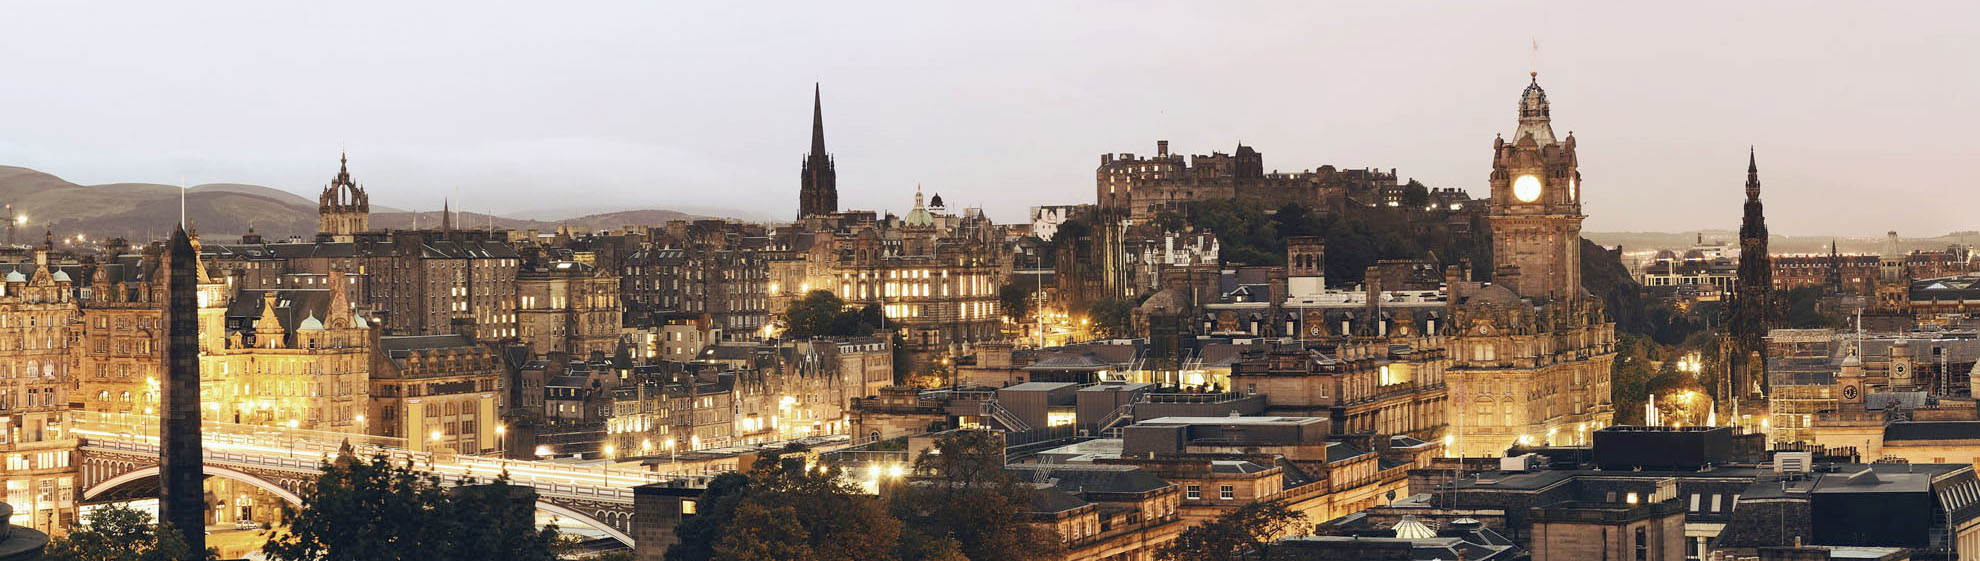 Insurance Brokers in Edinburgh